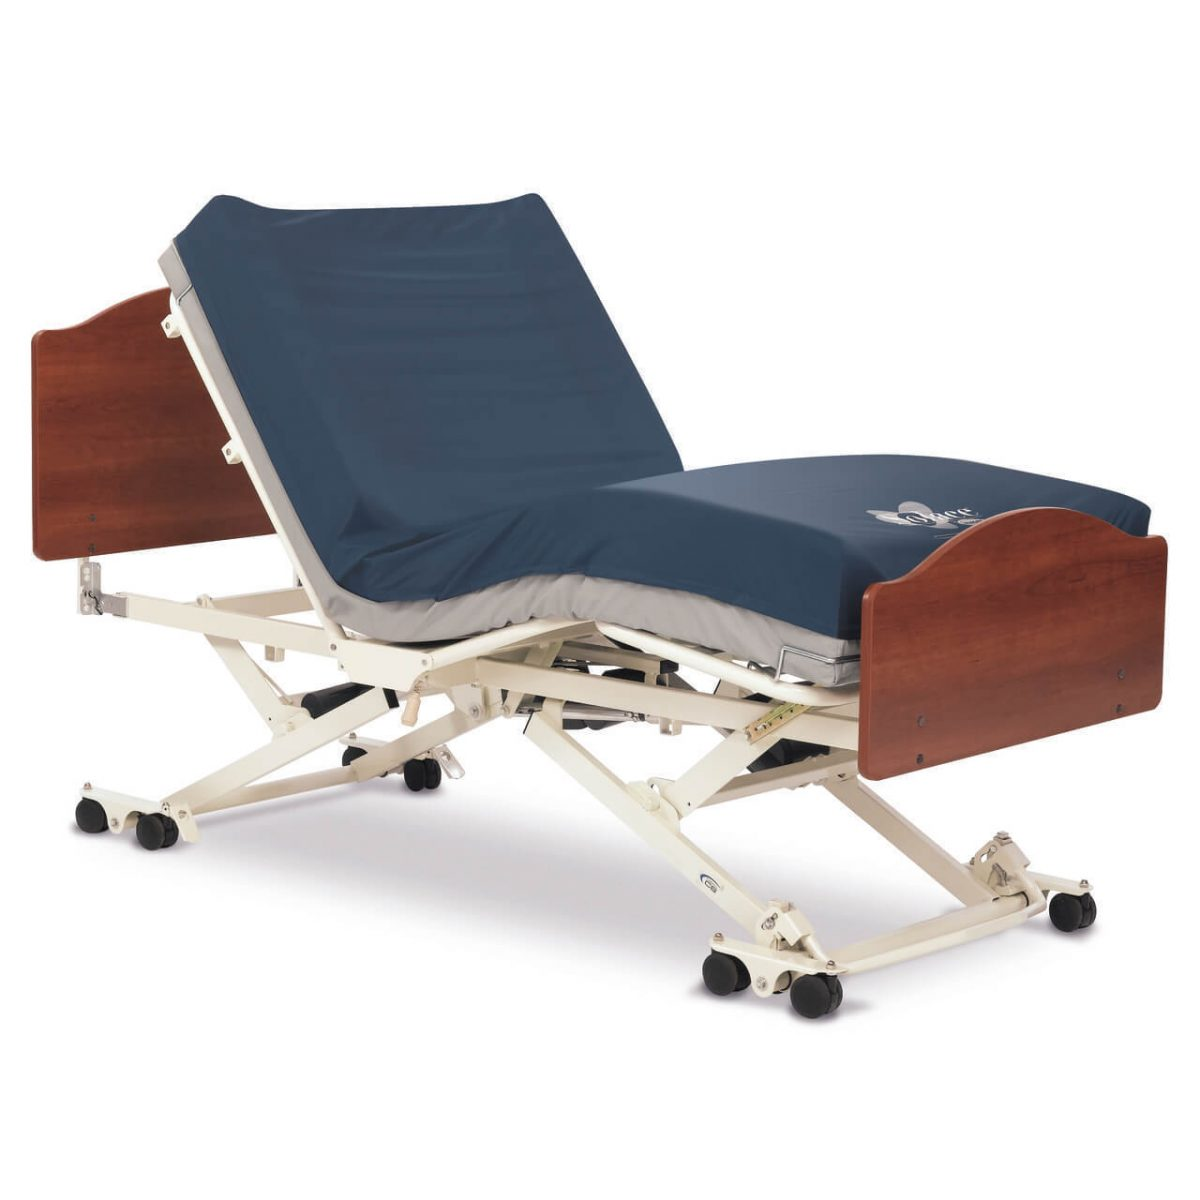 Invacare Carroll Beds - SFI Medical Equipment Solutions